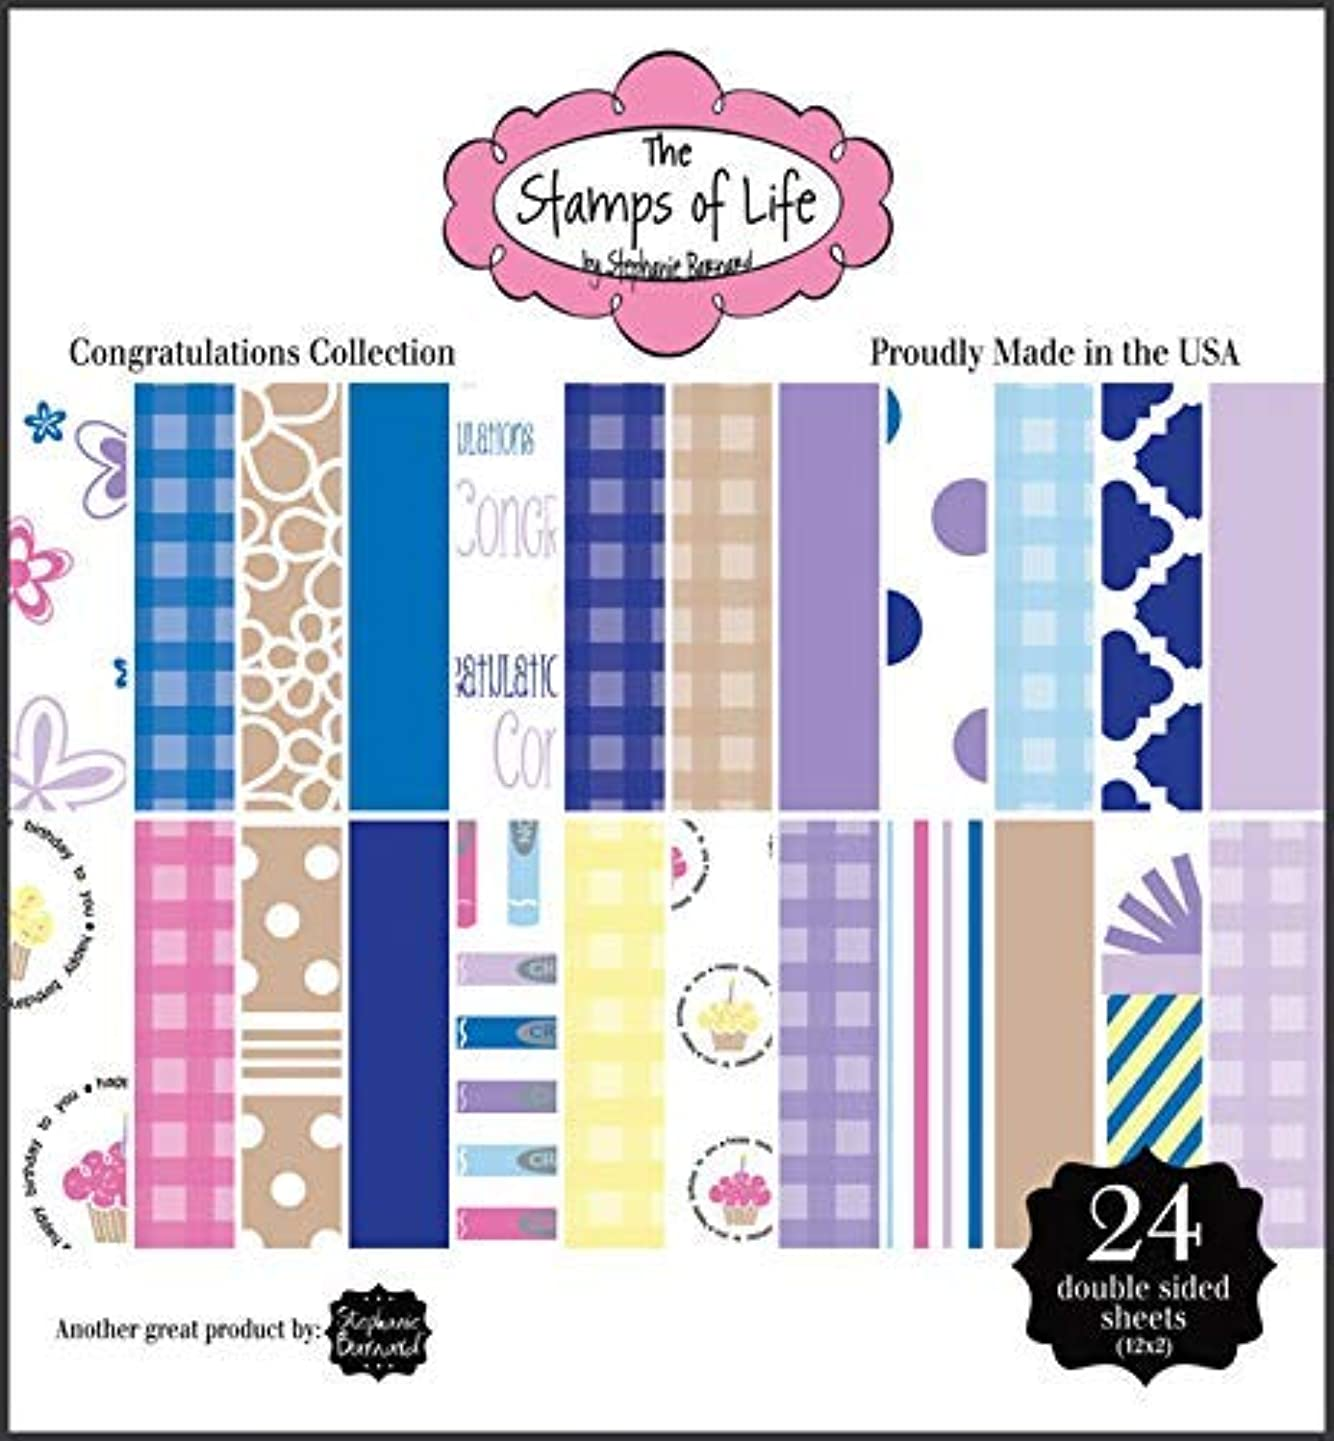 The Stamps of Life Congratulations Patterned Paper Pad 3-Pack for Card-Making and Scrapbooking by Stephanie Barnard